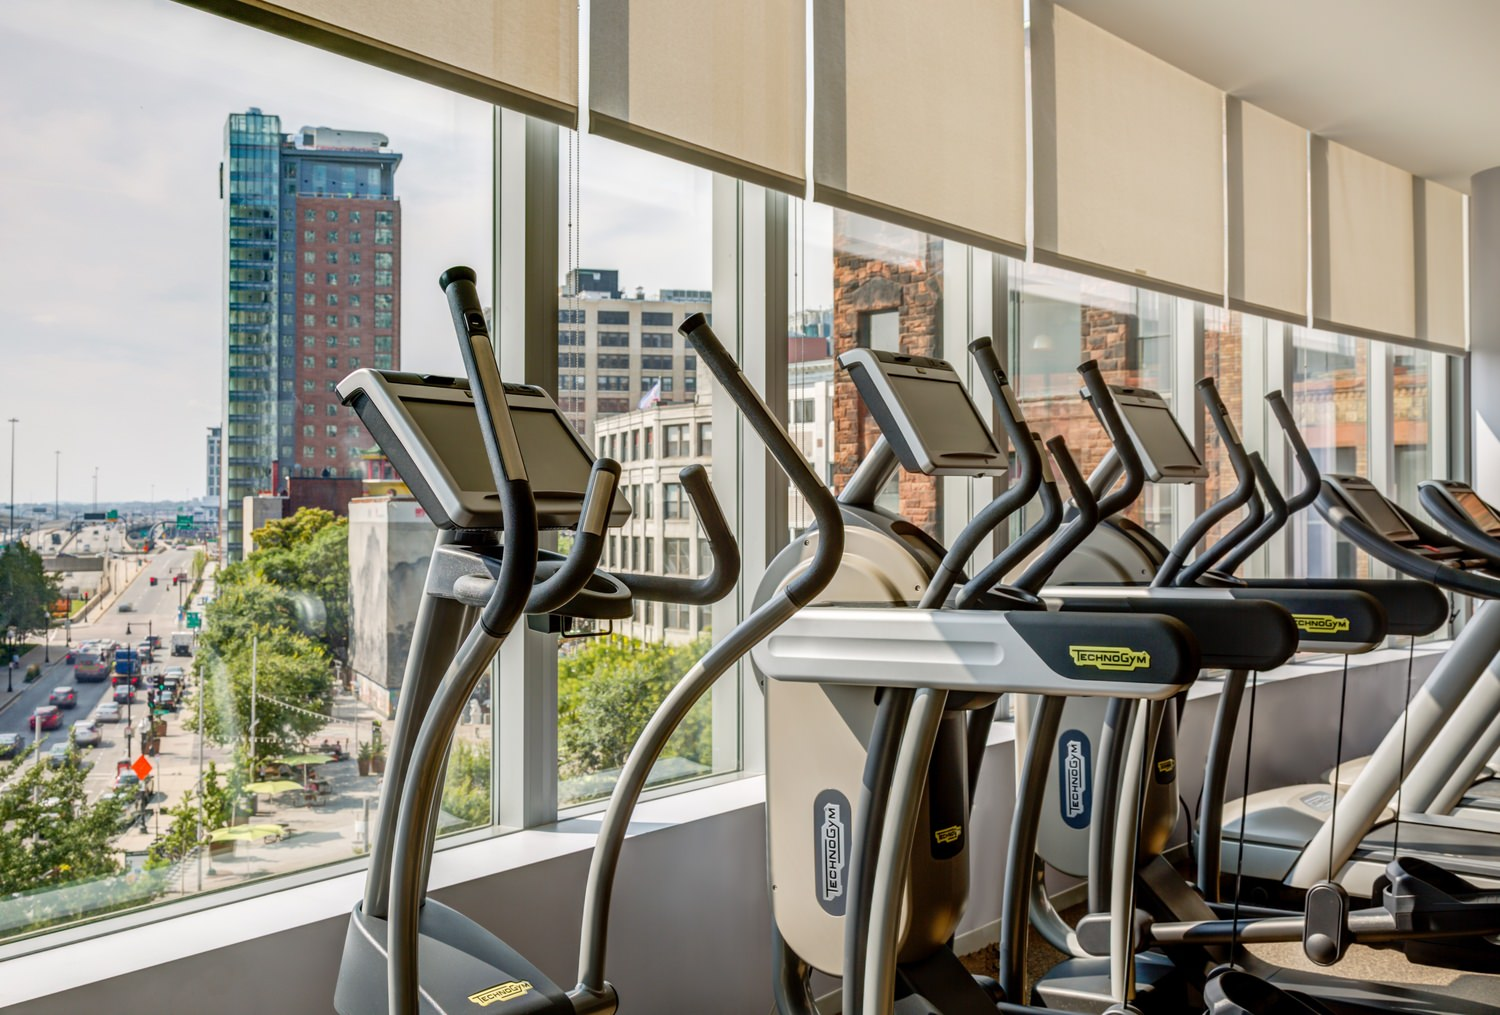 A gym in a building that has elliptical machines and treadmills that are looking out the windows down to the road.